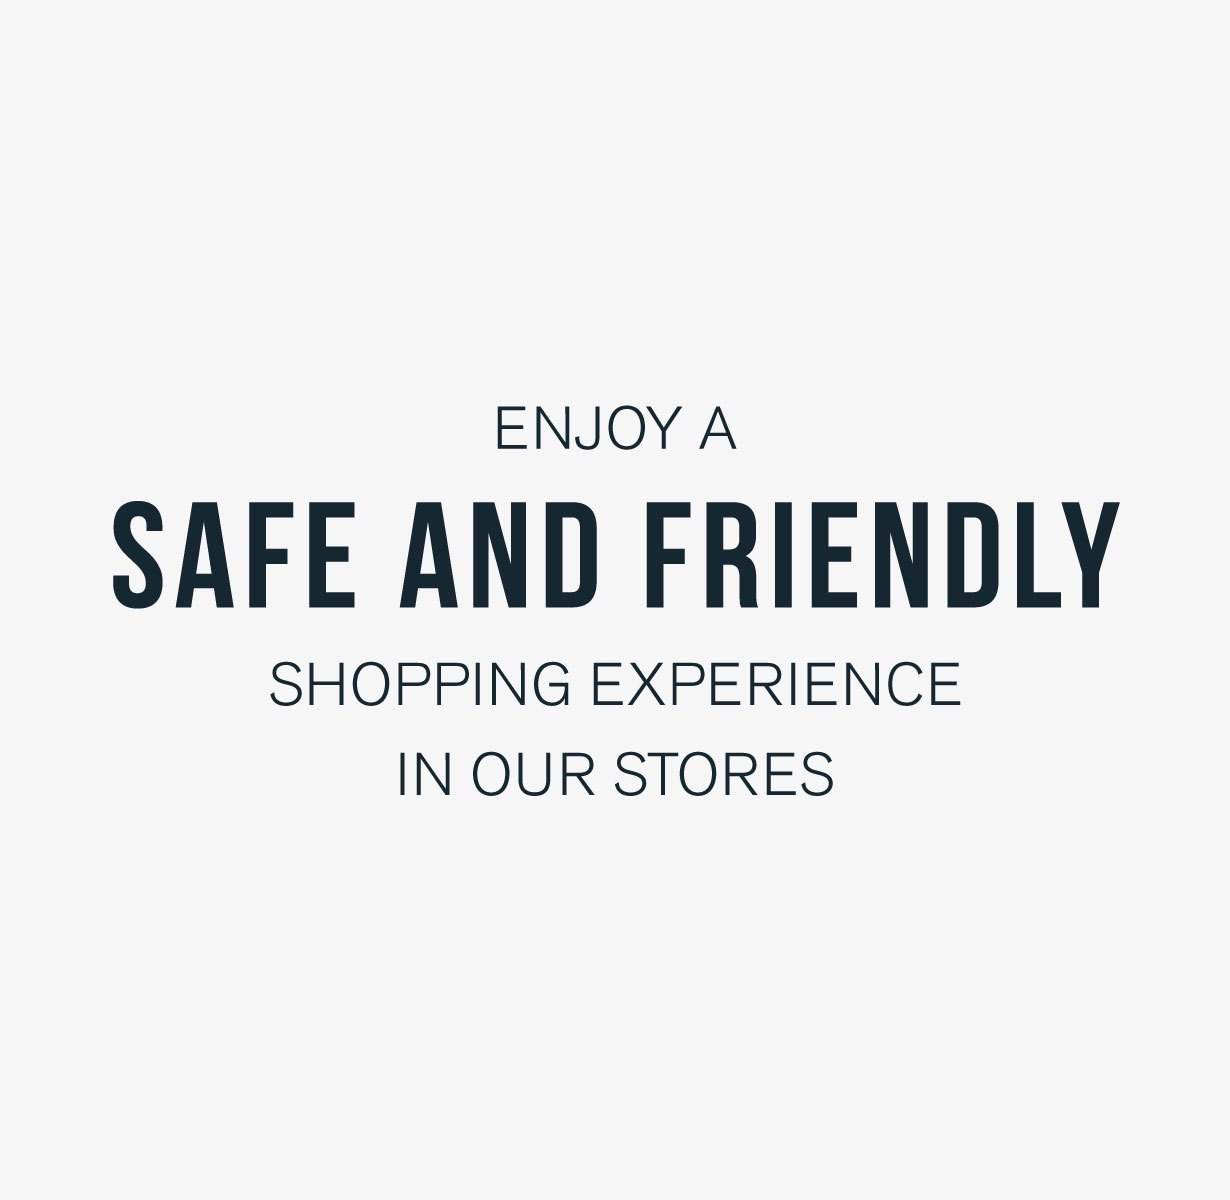 Enjoy a safe and friendly shopping experience in our stores.